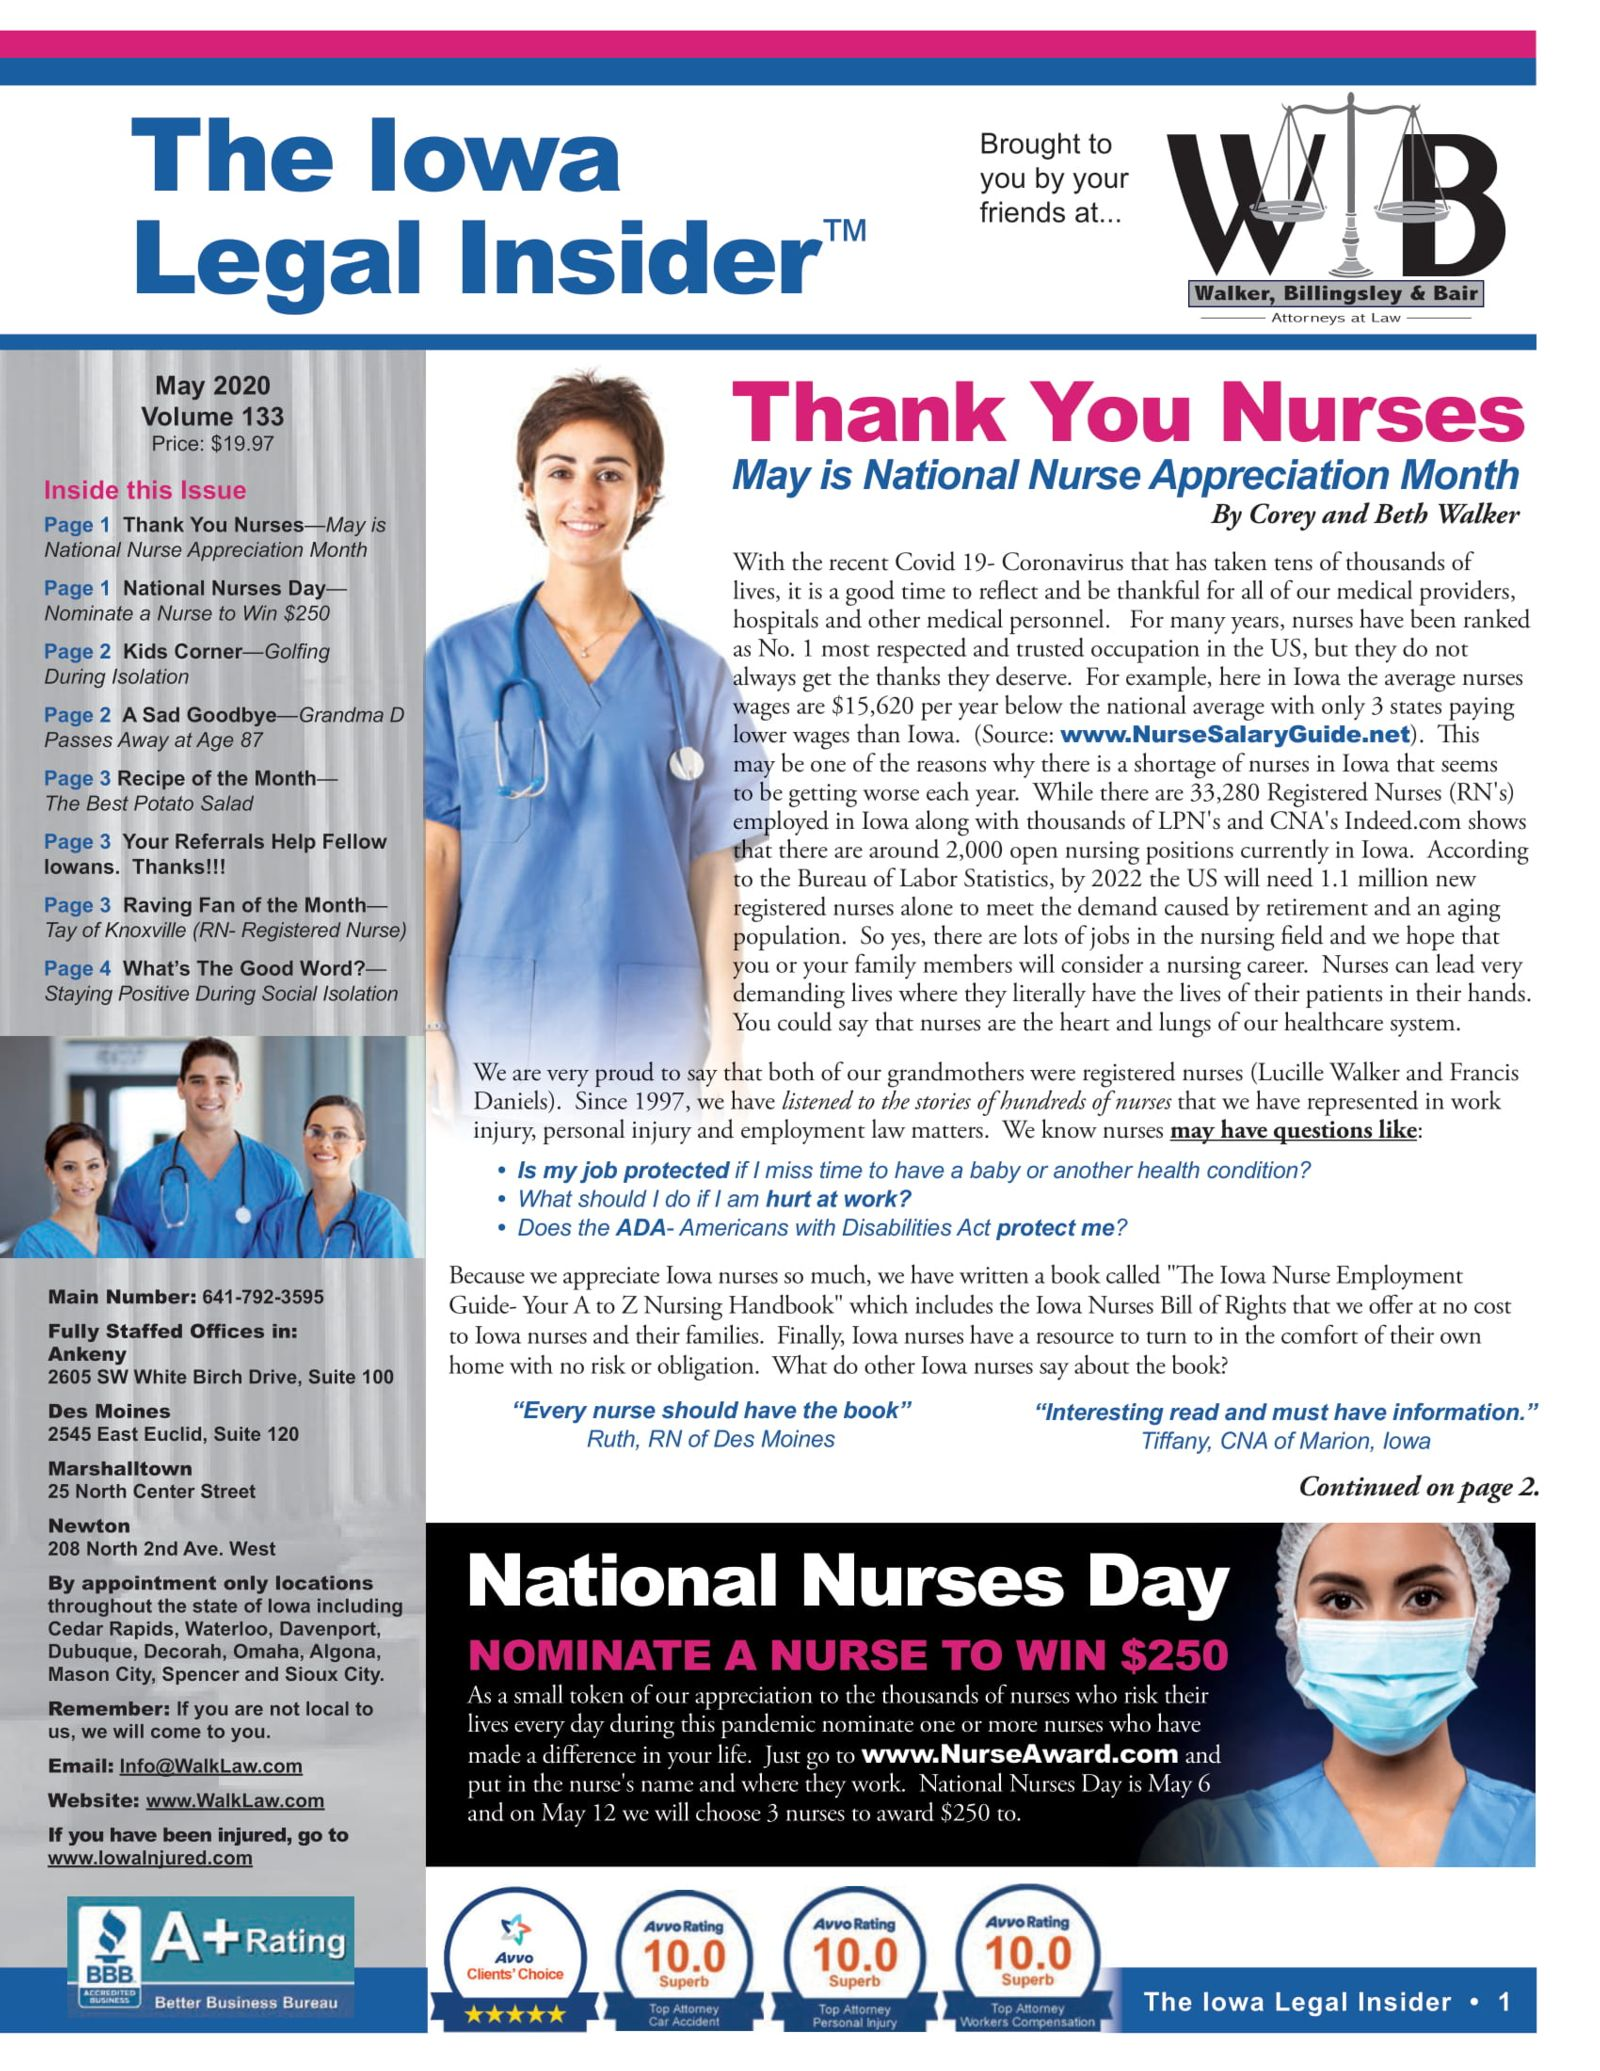 The iowa legal insider Thank You to nurses national  urses day